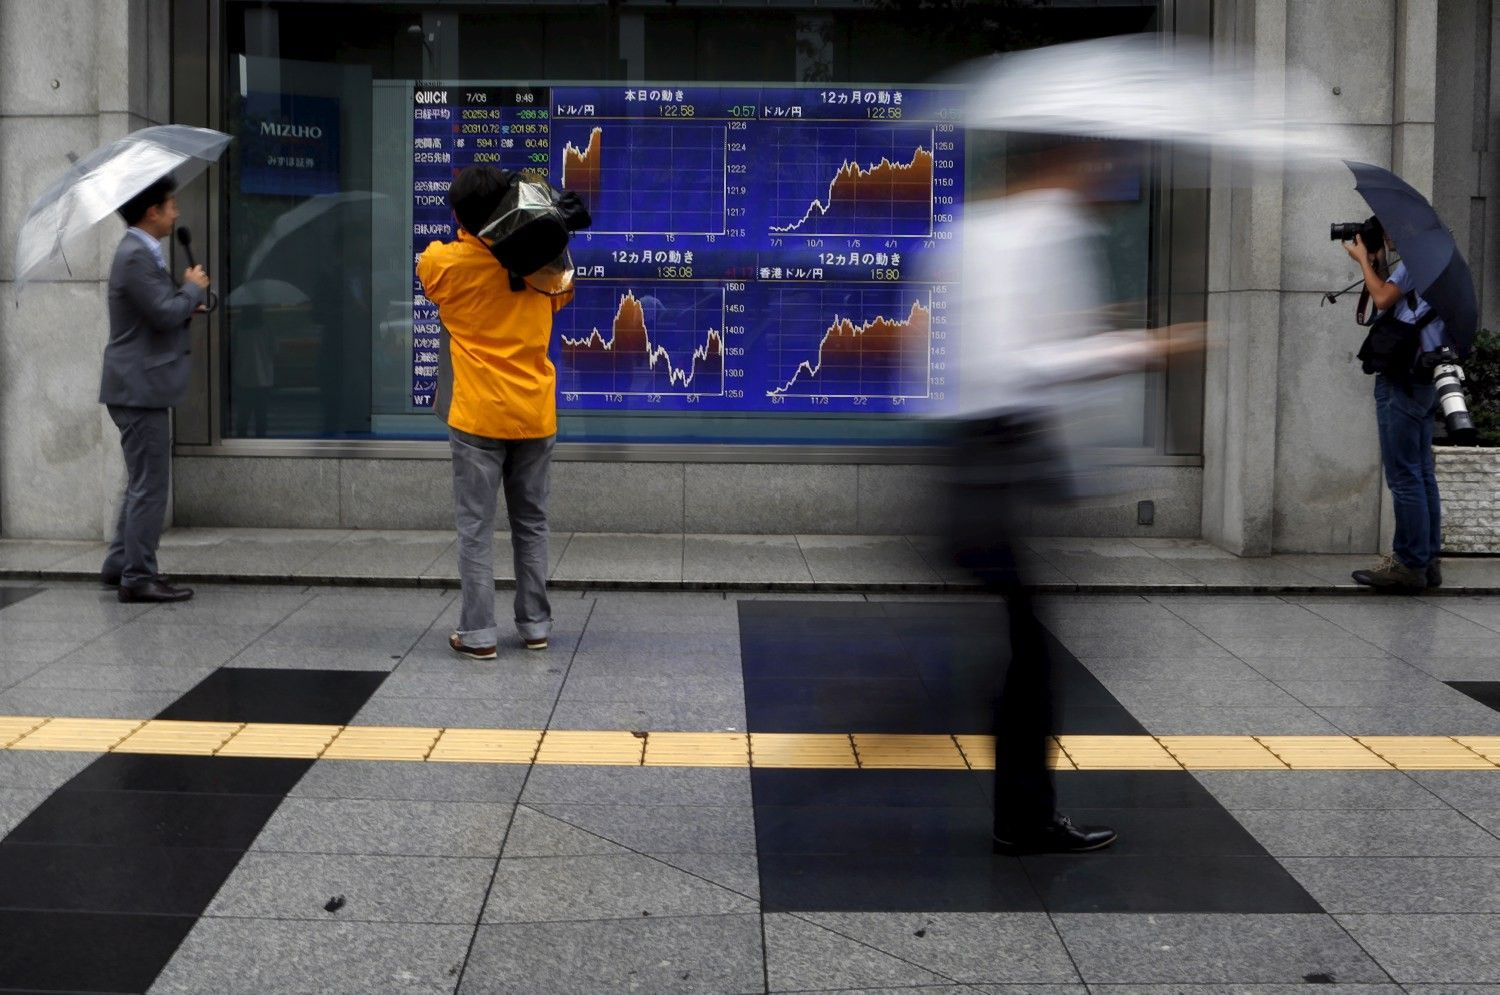 Asia Stocks Mixed Before Korea Drill, Jackson Hole: Markets Wrap